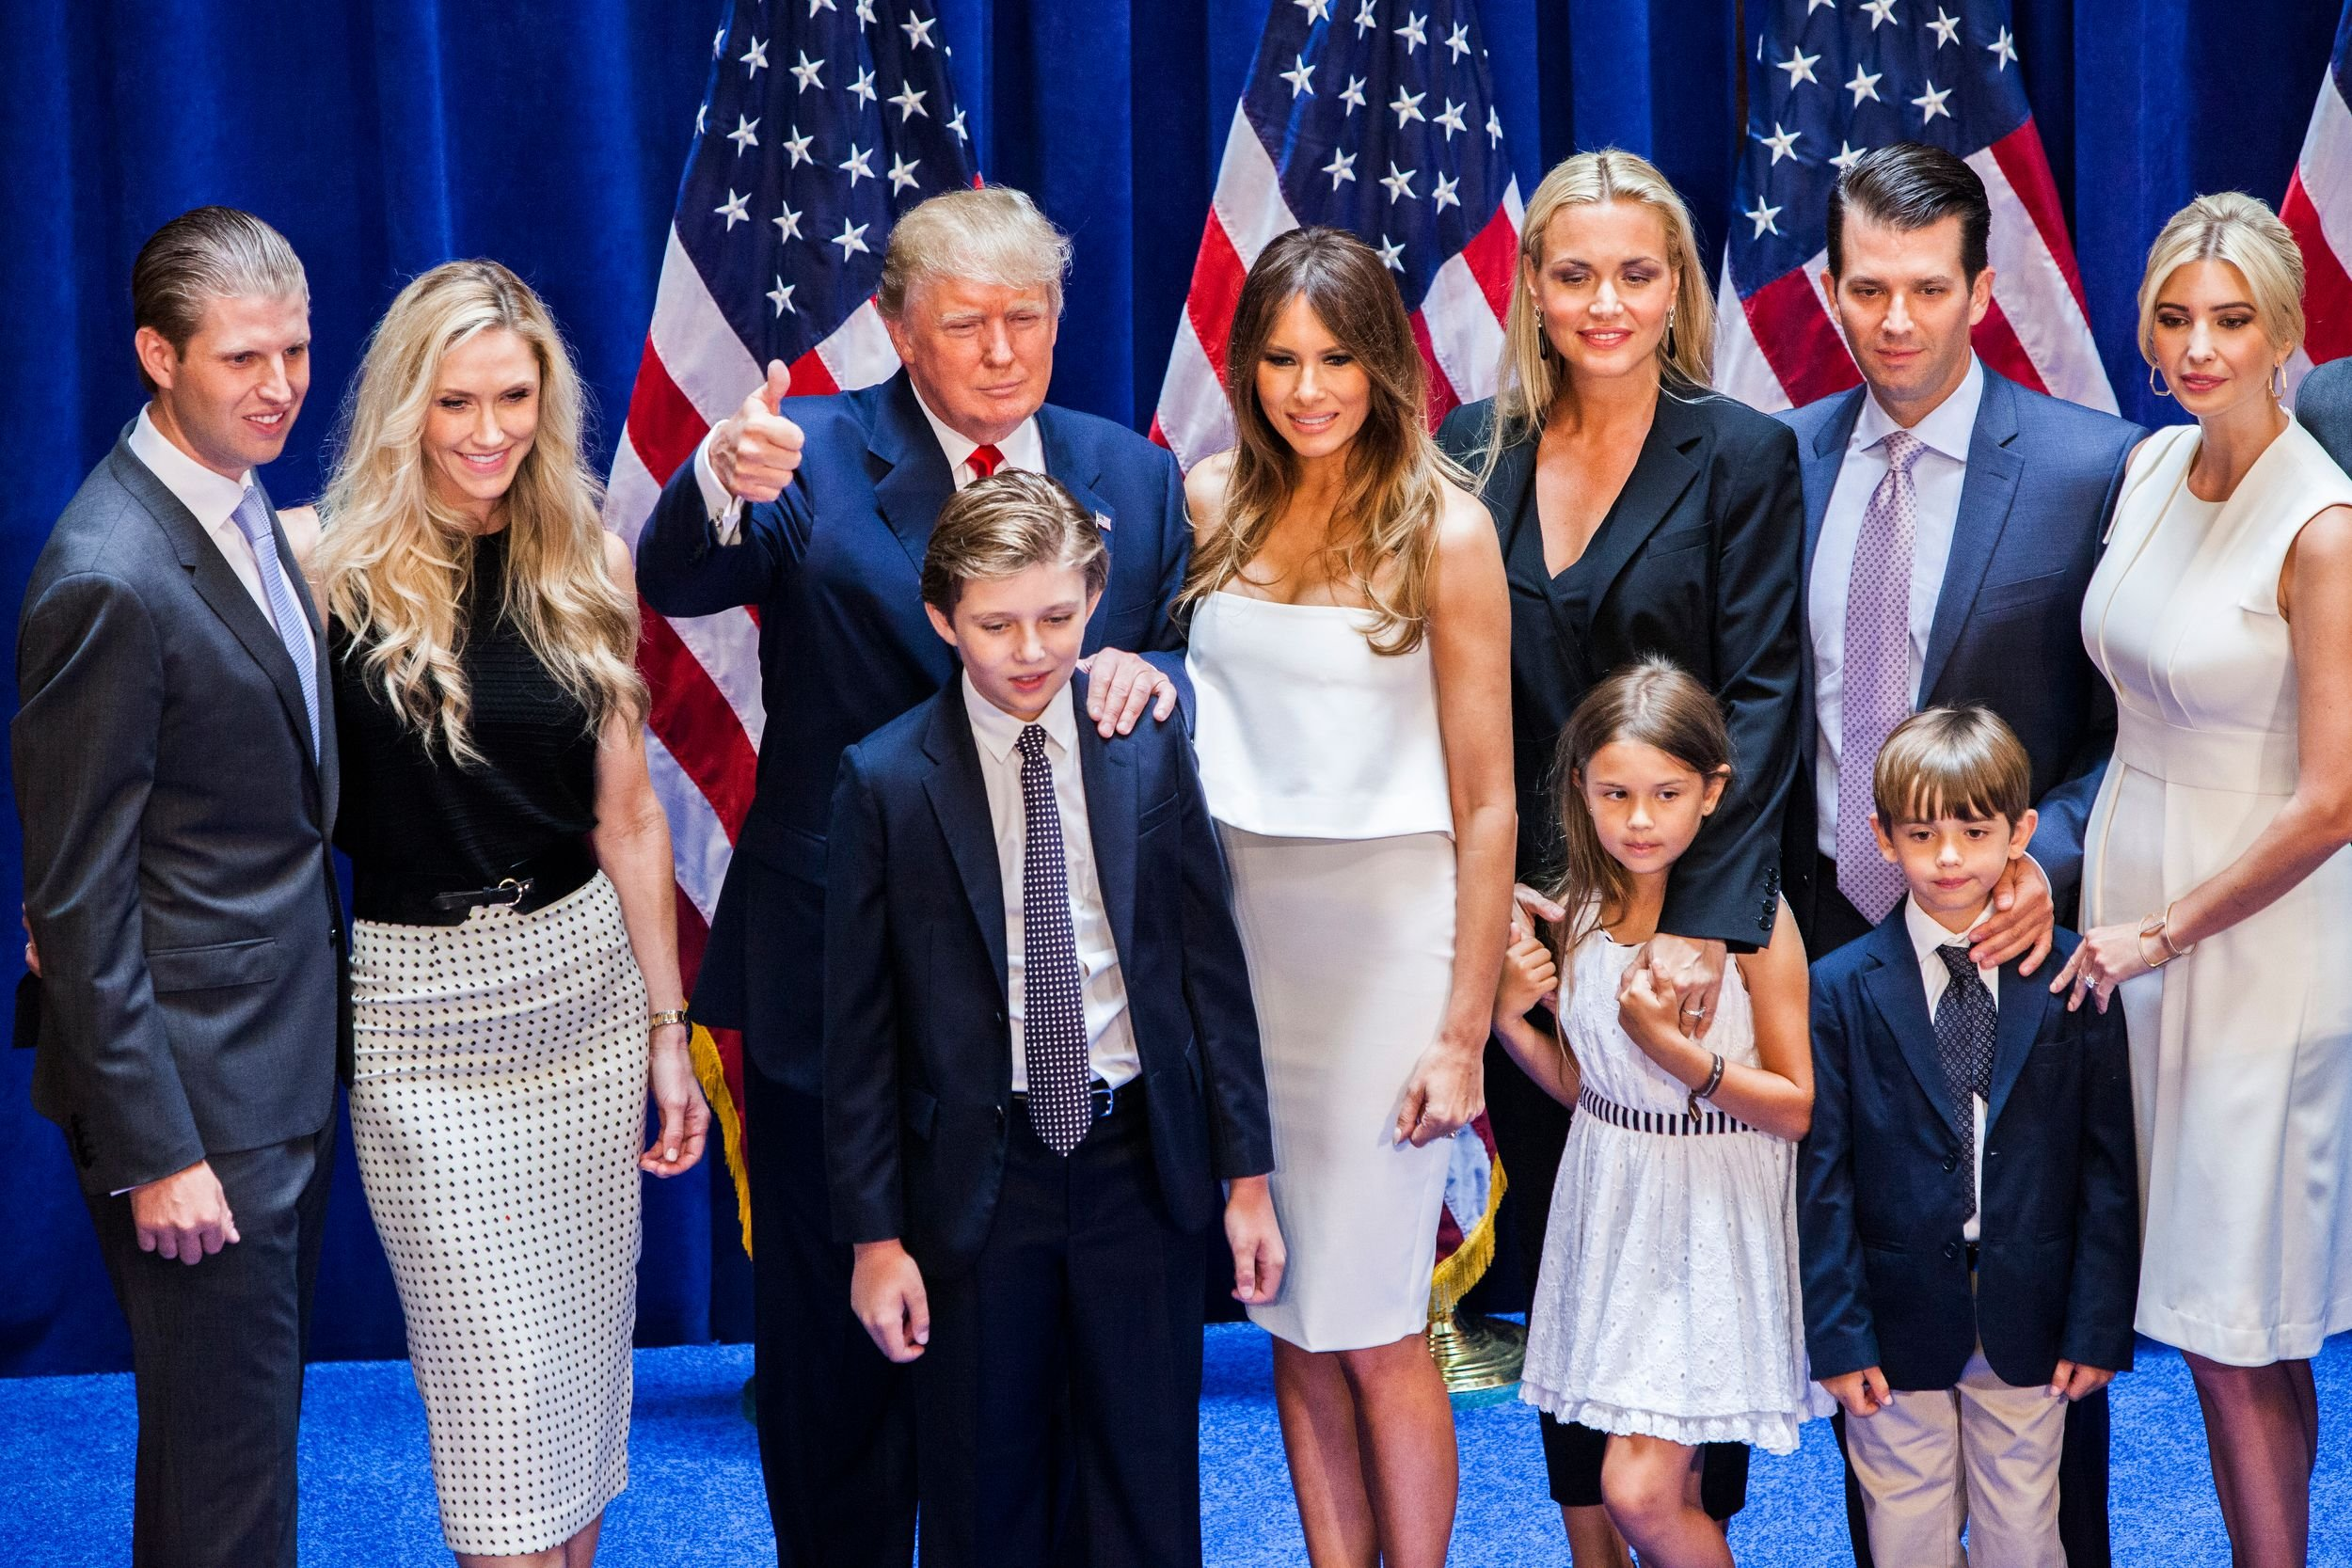 Eric Trump, Lara Yunaska Trump, Donald Trump, Barron Trump, Melania Trump, Vanessa Haydon Trump, Kai Madison Trump, Donald Trump Jr., Donald John Trump III, and Ivanka Trump pose for photos on stage after Donald Trump announced his candidacy for the U.S. presidency at Trump Tower 2015| Photo: Getty Images